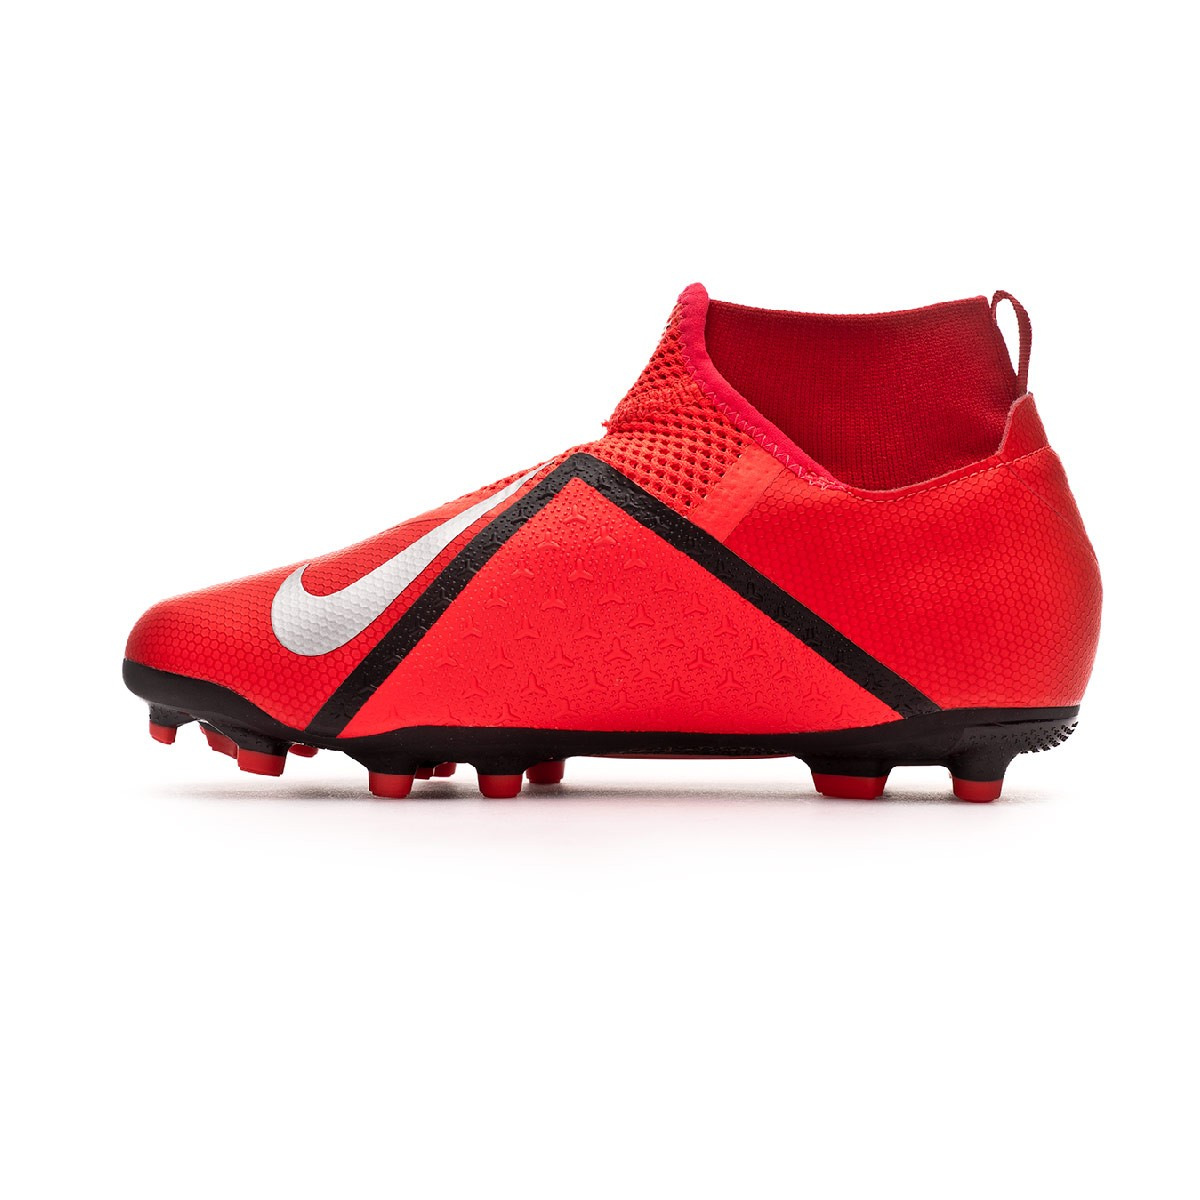 756346f6c Football Boots Nike Phantom Vision Academy DF FG MG Niño Bright  crimson-Metallic silver - Football store Fútbol Emotion